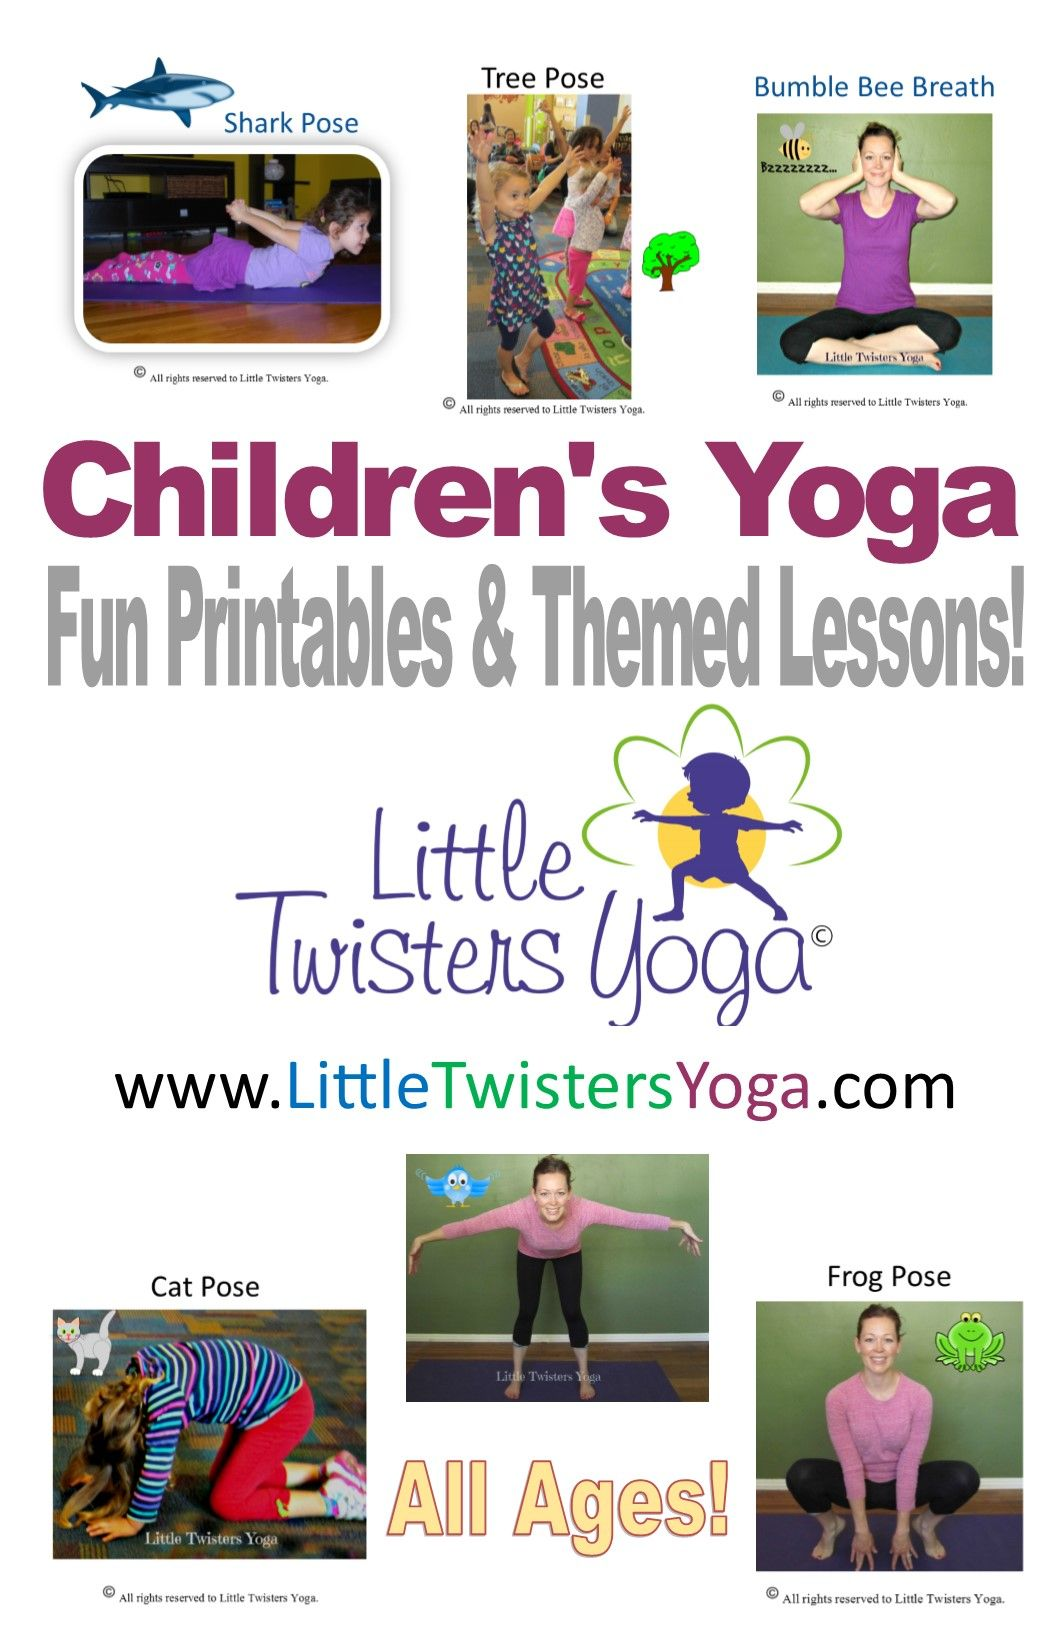 Find Tons Of Tips For Introducing Young Kids To Yoga Along With Fun Printables And At Home Yoga